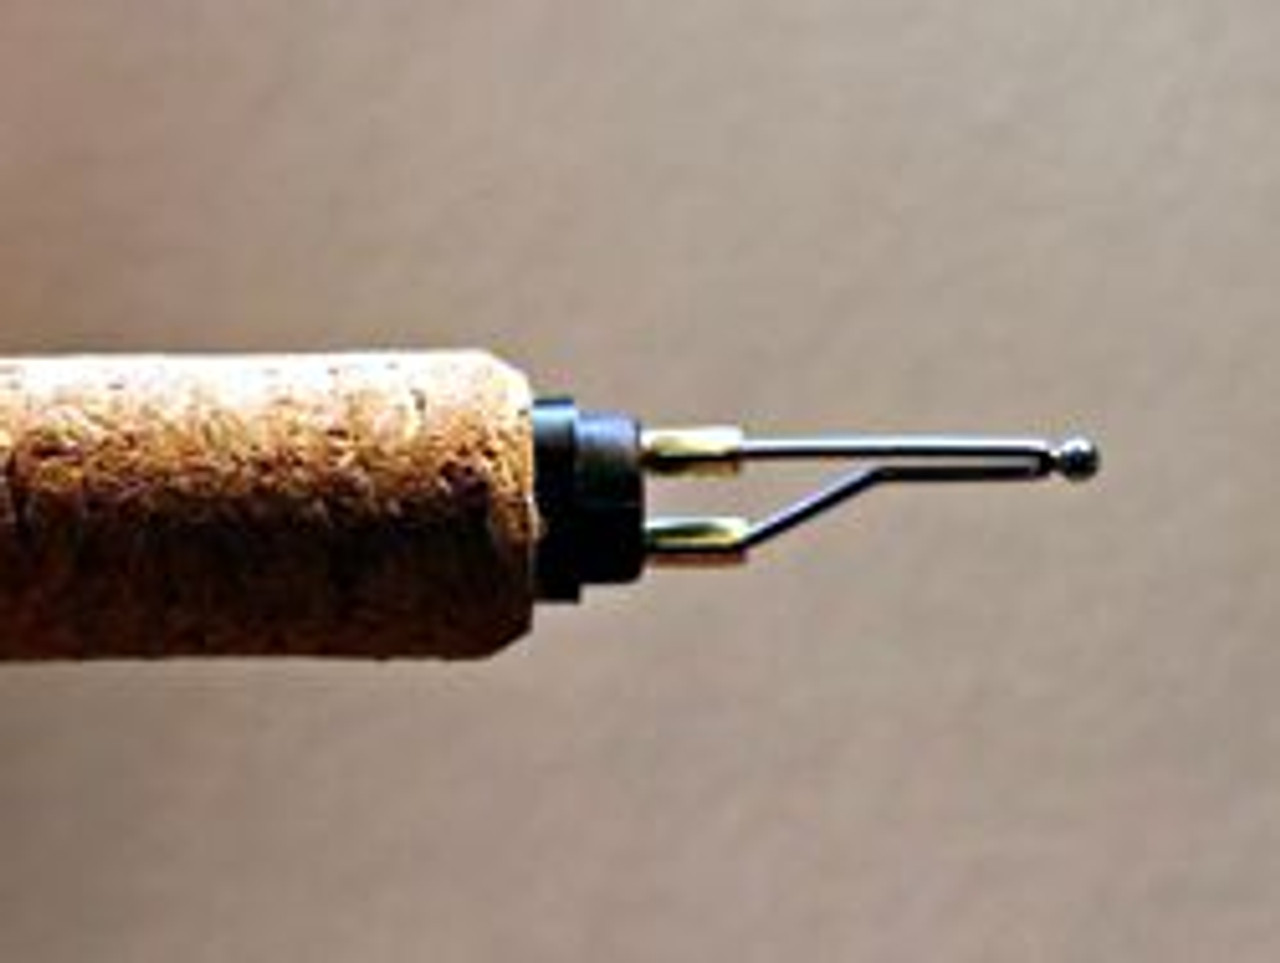 "Colwood Ball Fixed Tip Woodburning Pen Ball 3 with a 09375"" diameter (2.3 mm) ball."